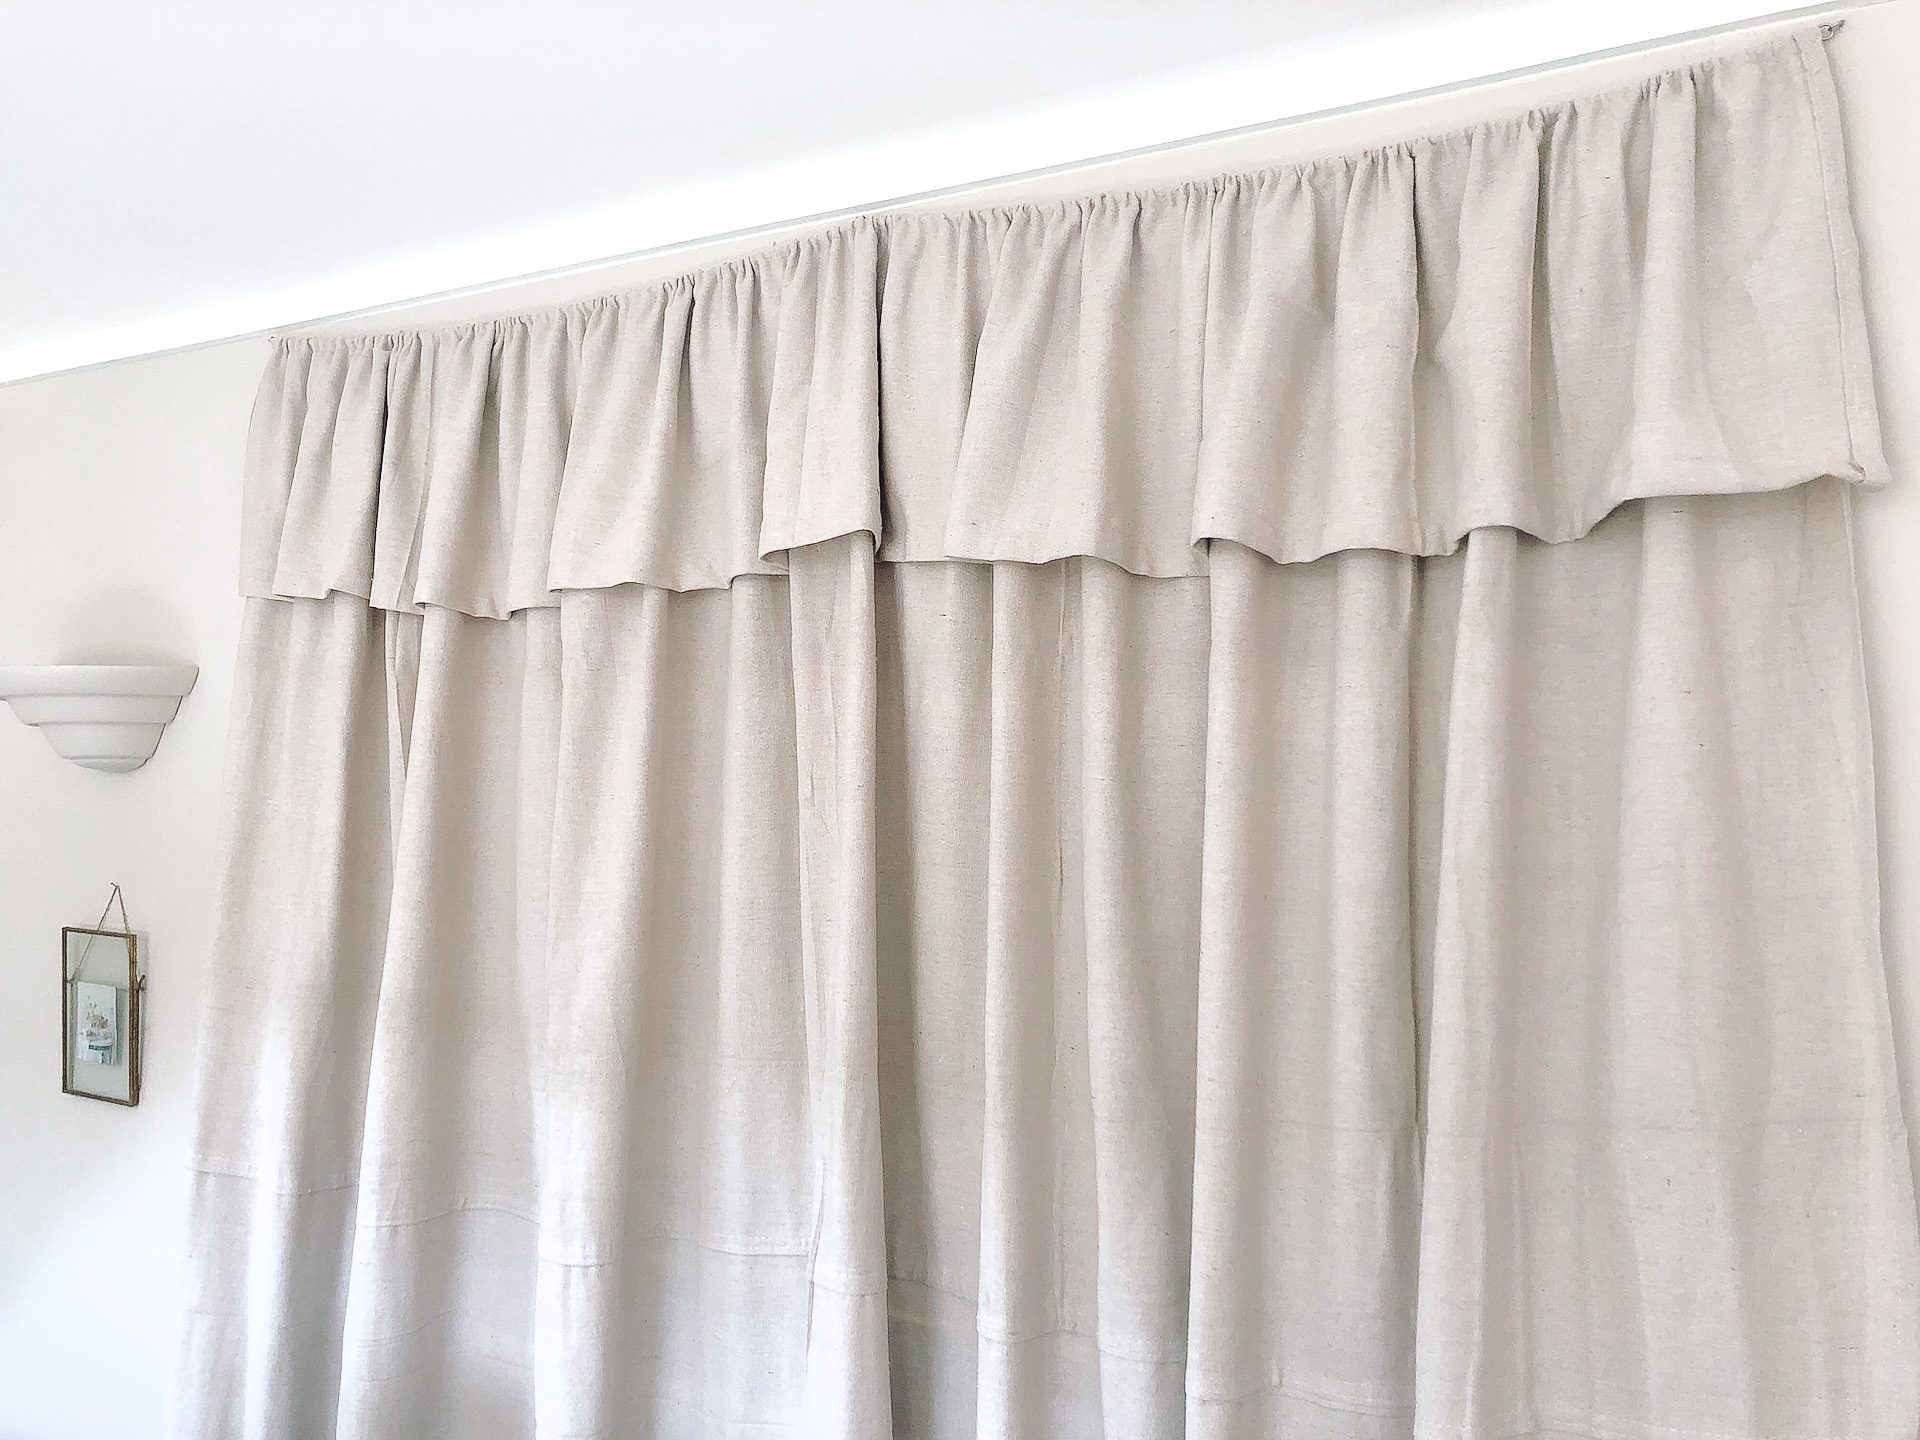 Farmhouse Inspired Curtains Hanging On Wall